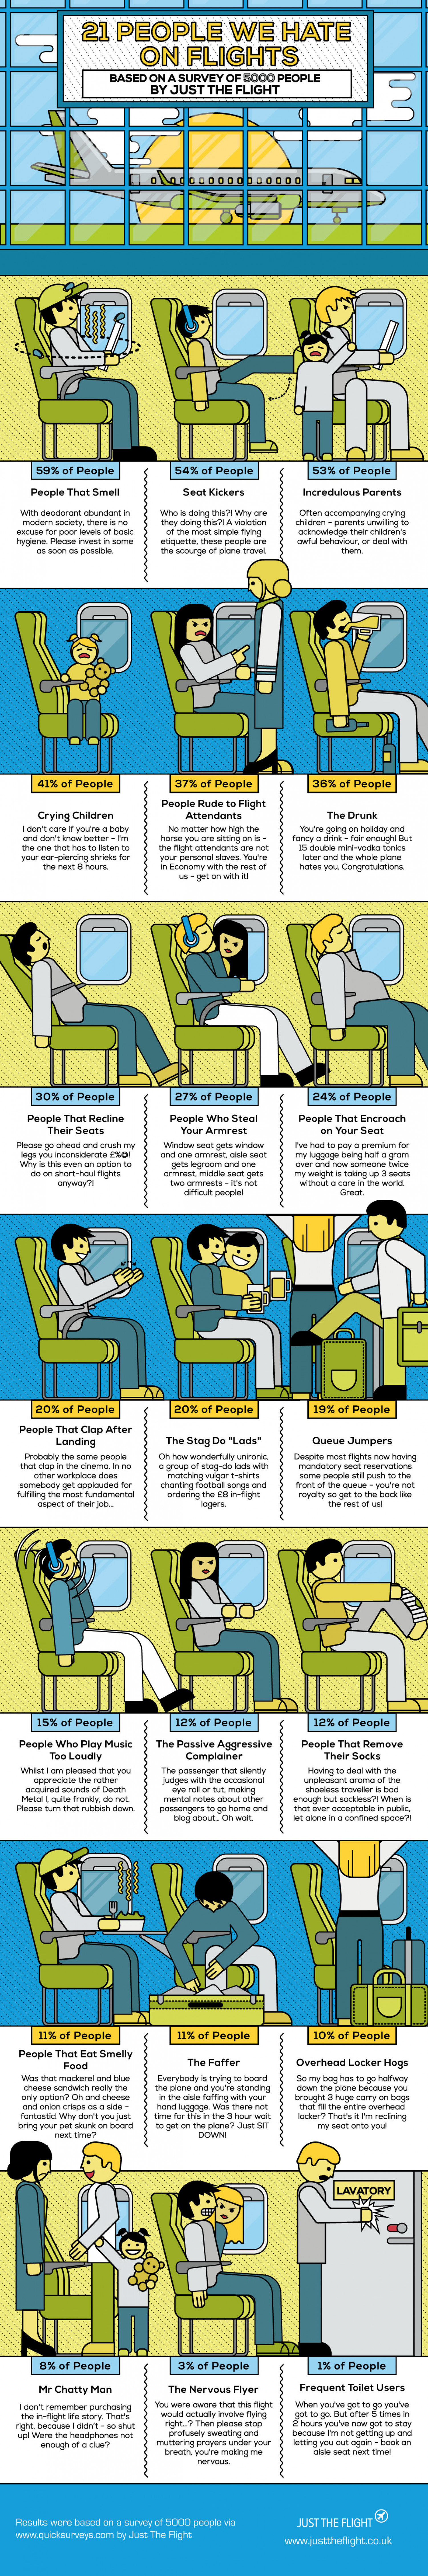 21 People We Hate On Flights Infographic